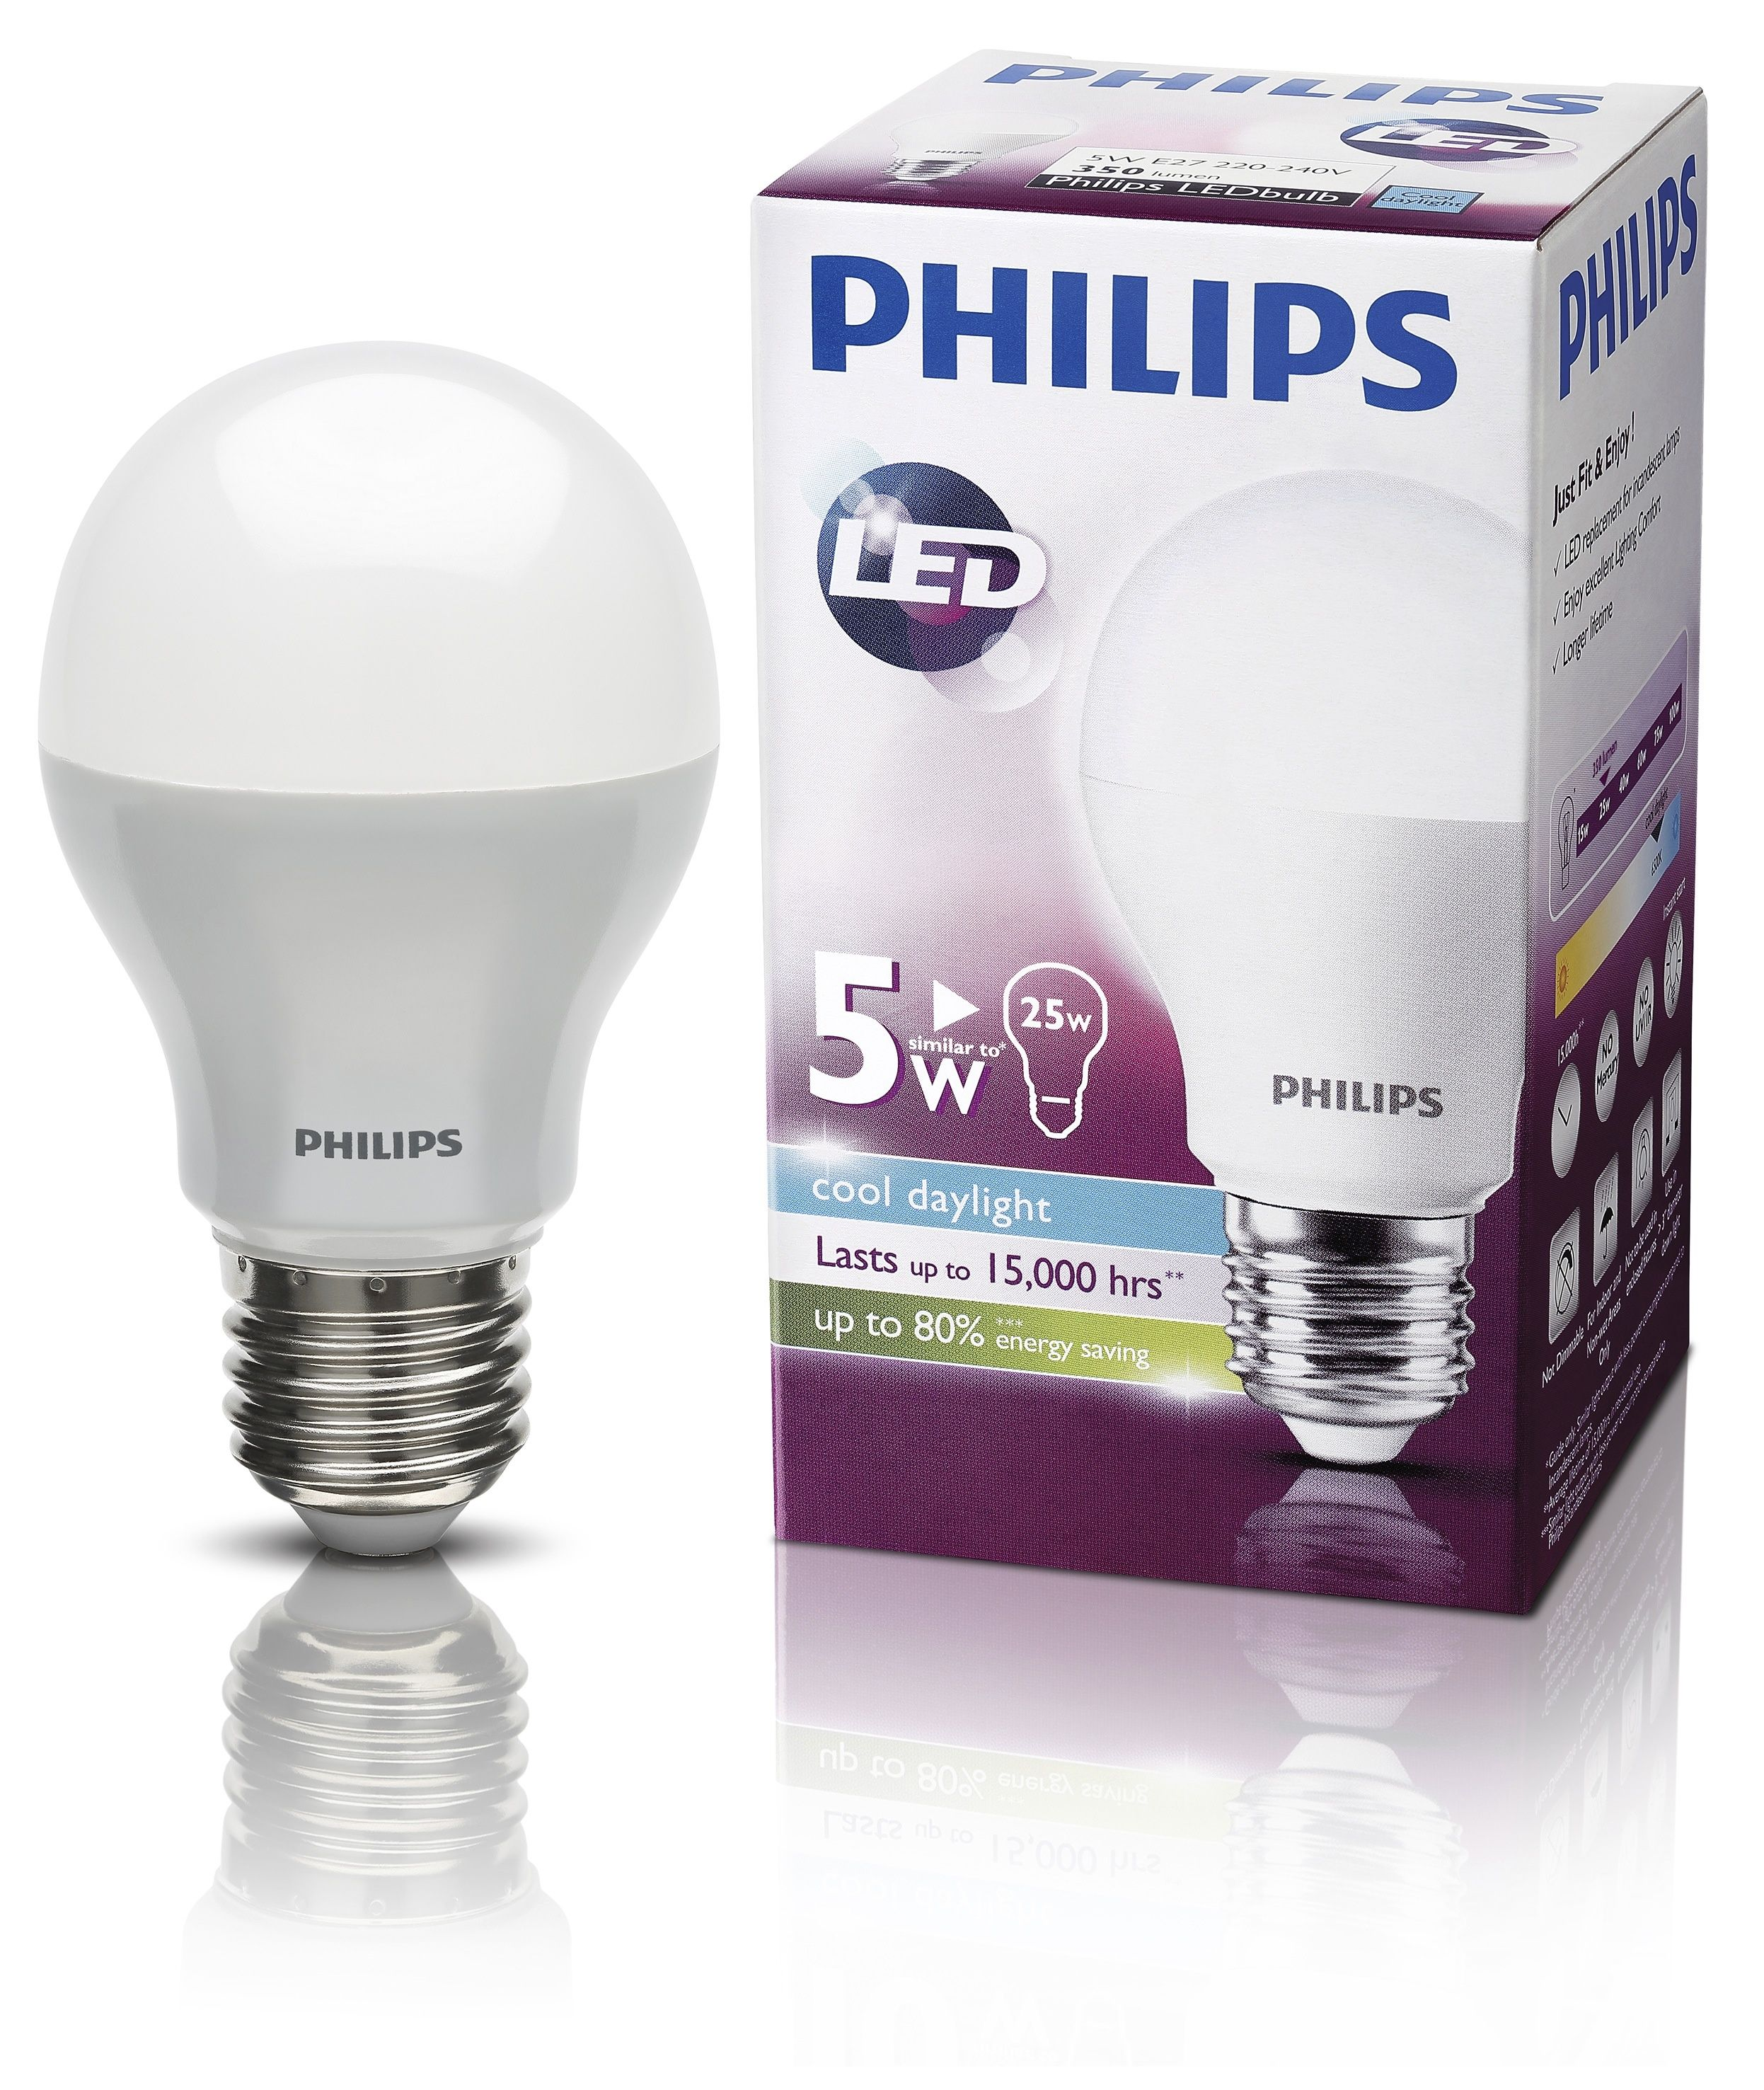 more lamps review led home decent astana tional cimiva bar marvellous cleantechnica lighting slimstyle w available philips inspirational and like fd as wells watch at bridge light